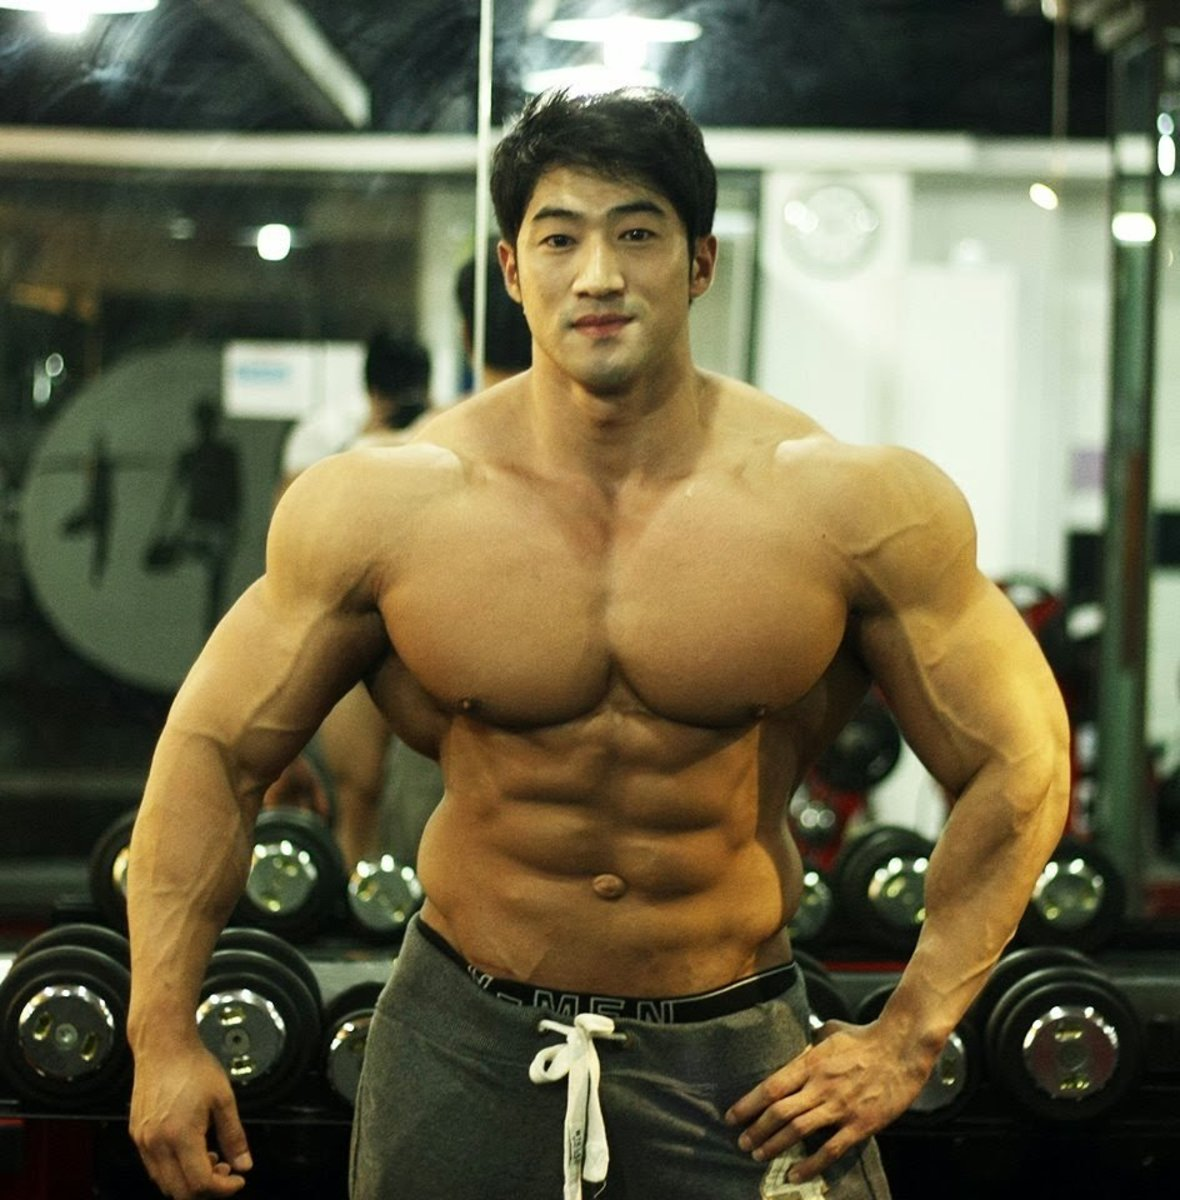 Hwang Chul Soon - Korean Bodybuilder and Fitness Model